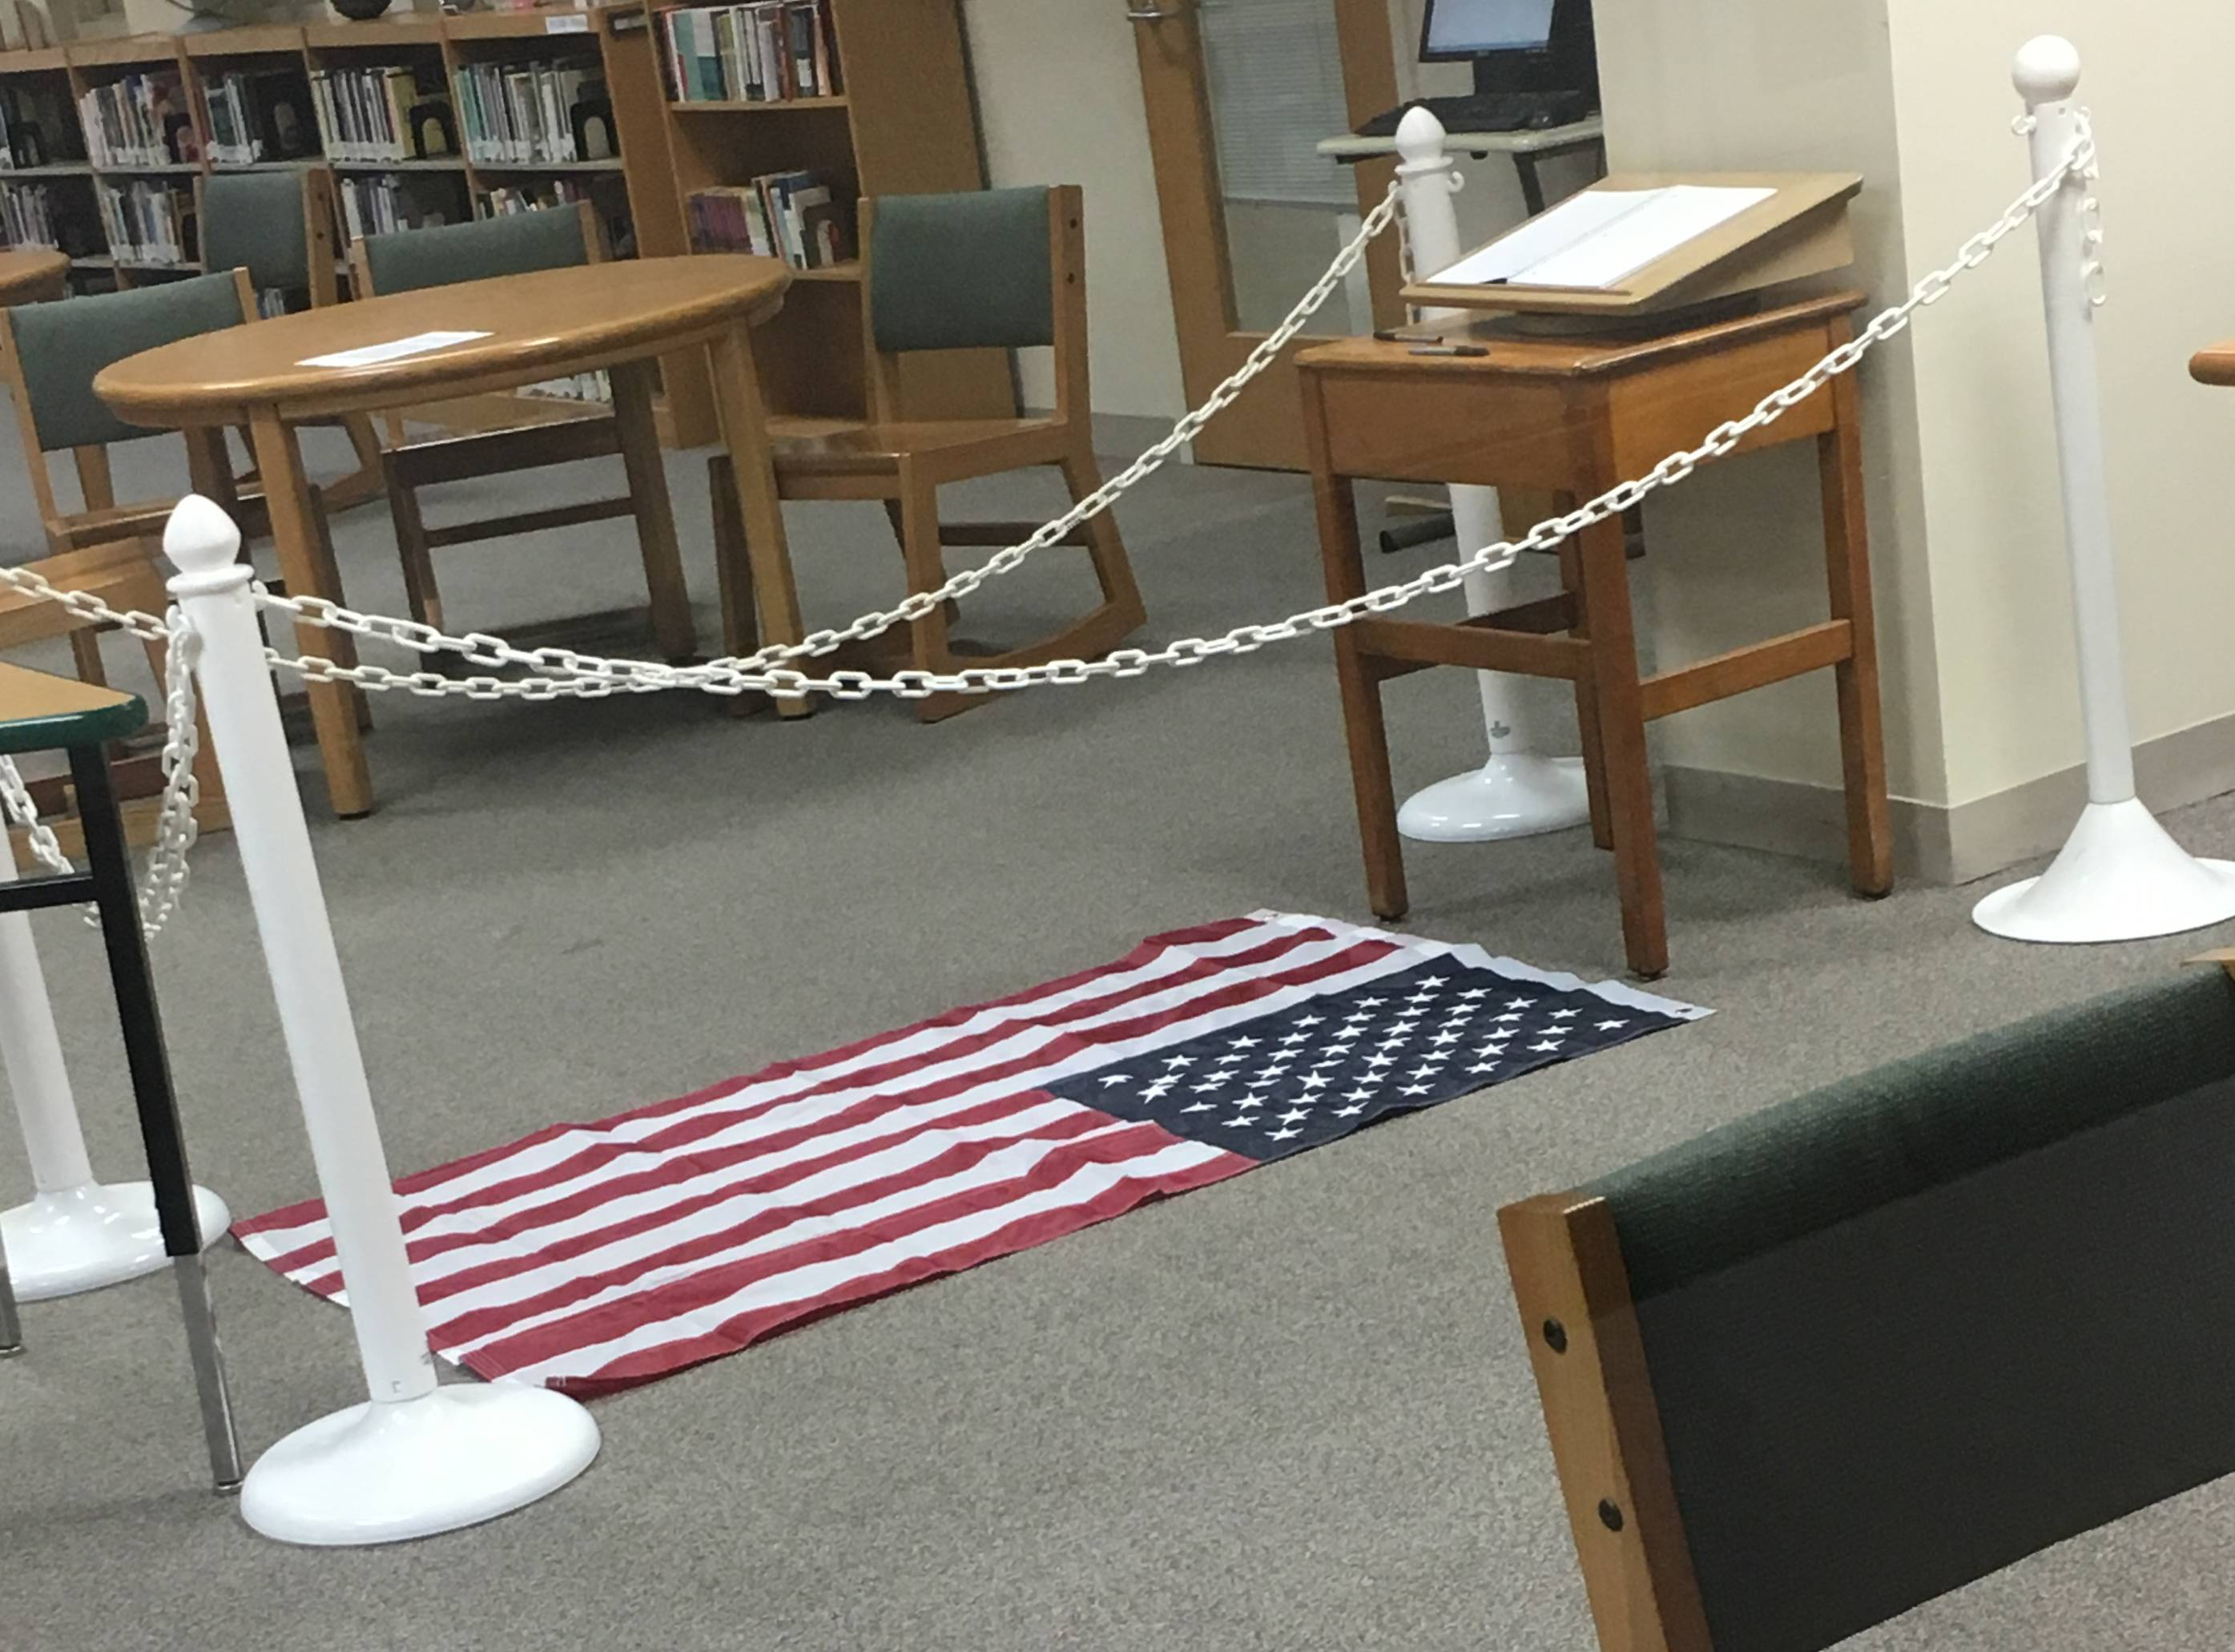 A display at Elmhurst's York High School, which featured a U.S. flag on the library floor, sparked outrage this week on social media. Now some York parents and residents are defending the display.